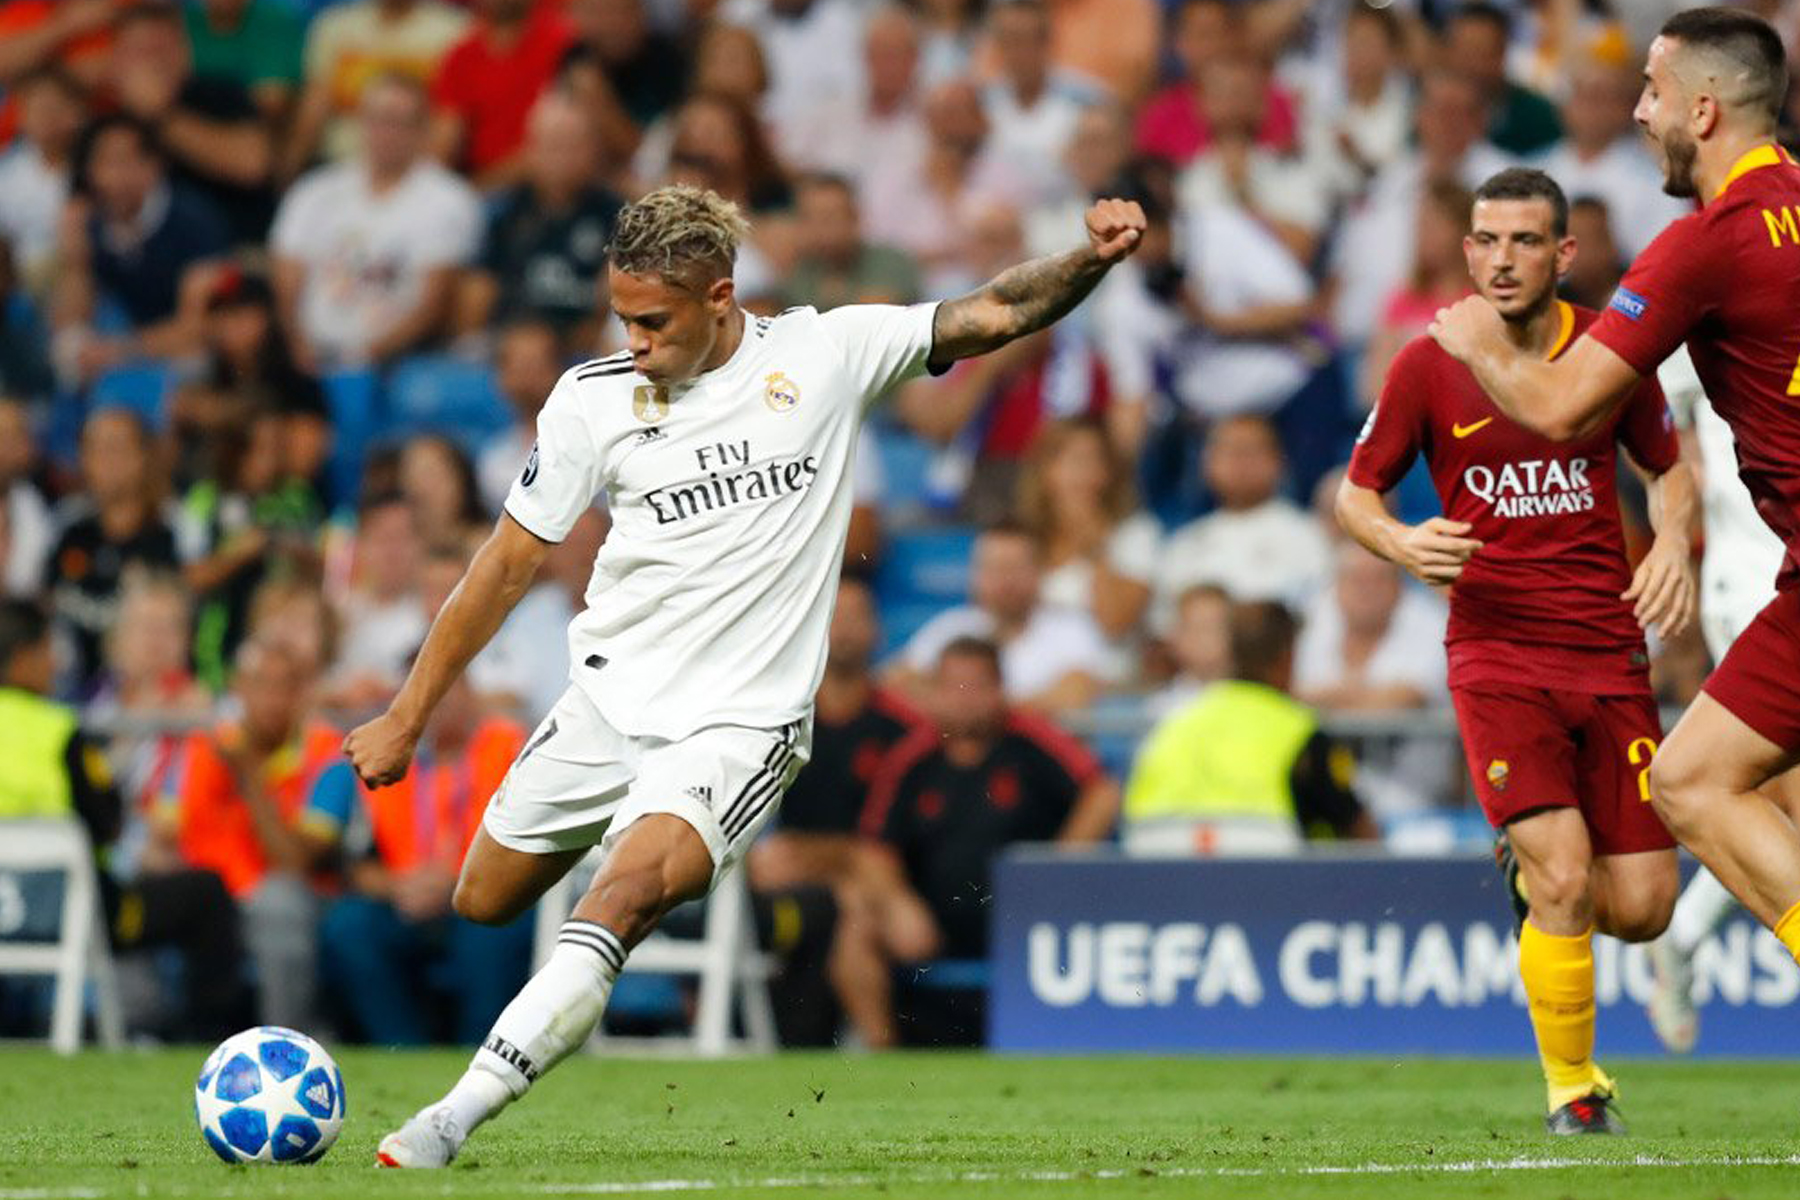 Real Madrid golea a la Roma